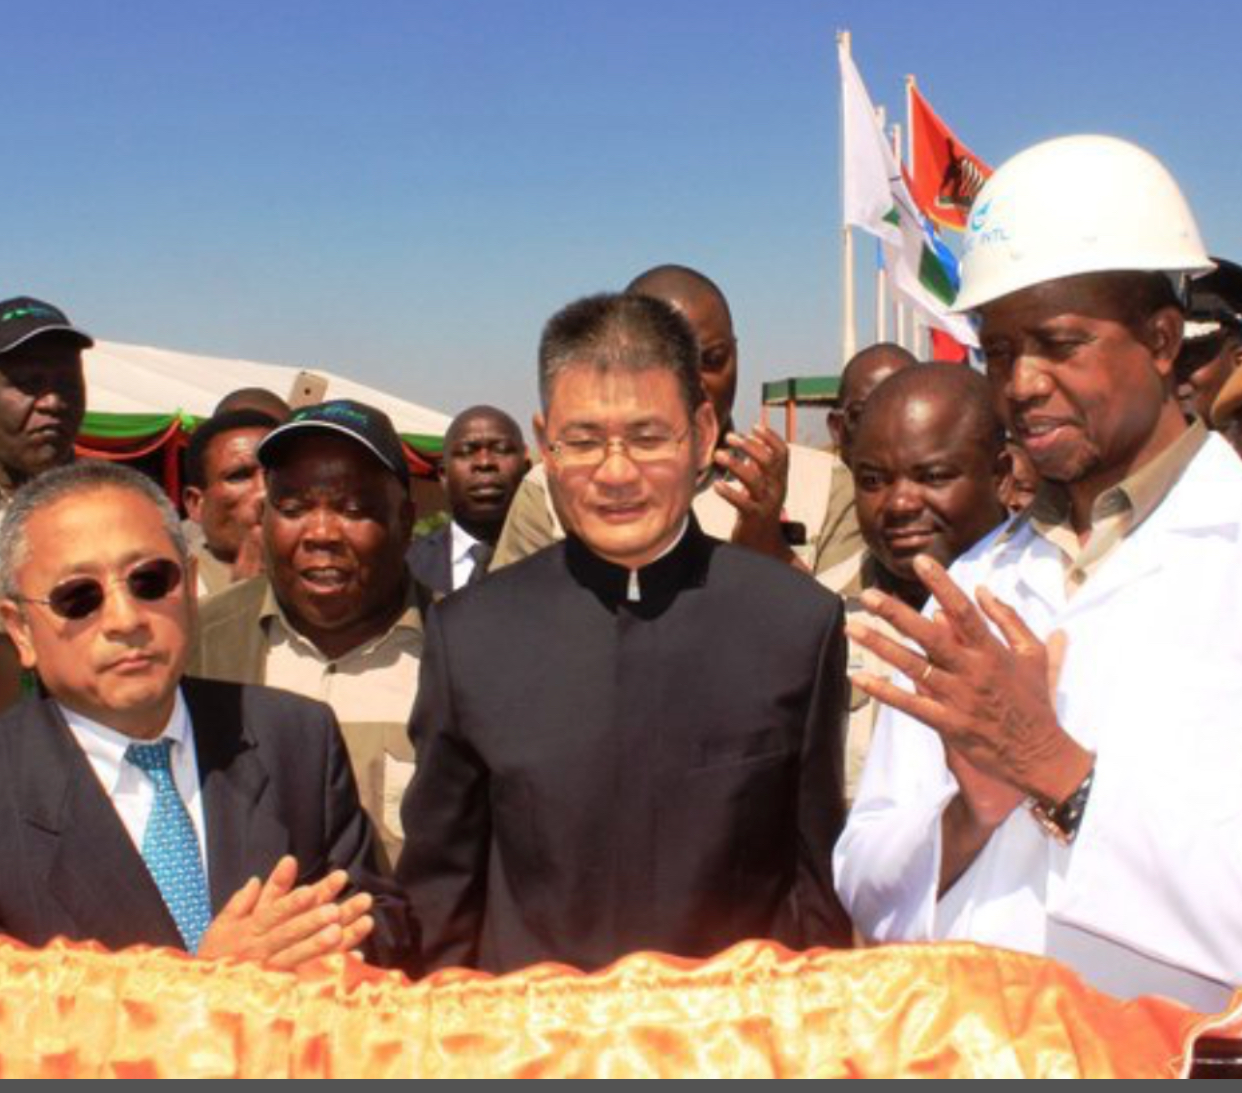 Avic International bribes Zambian president again for project